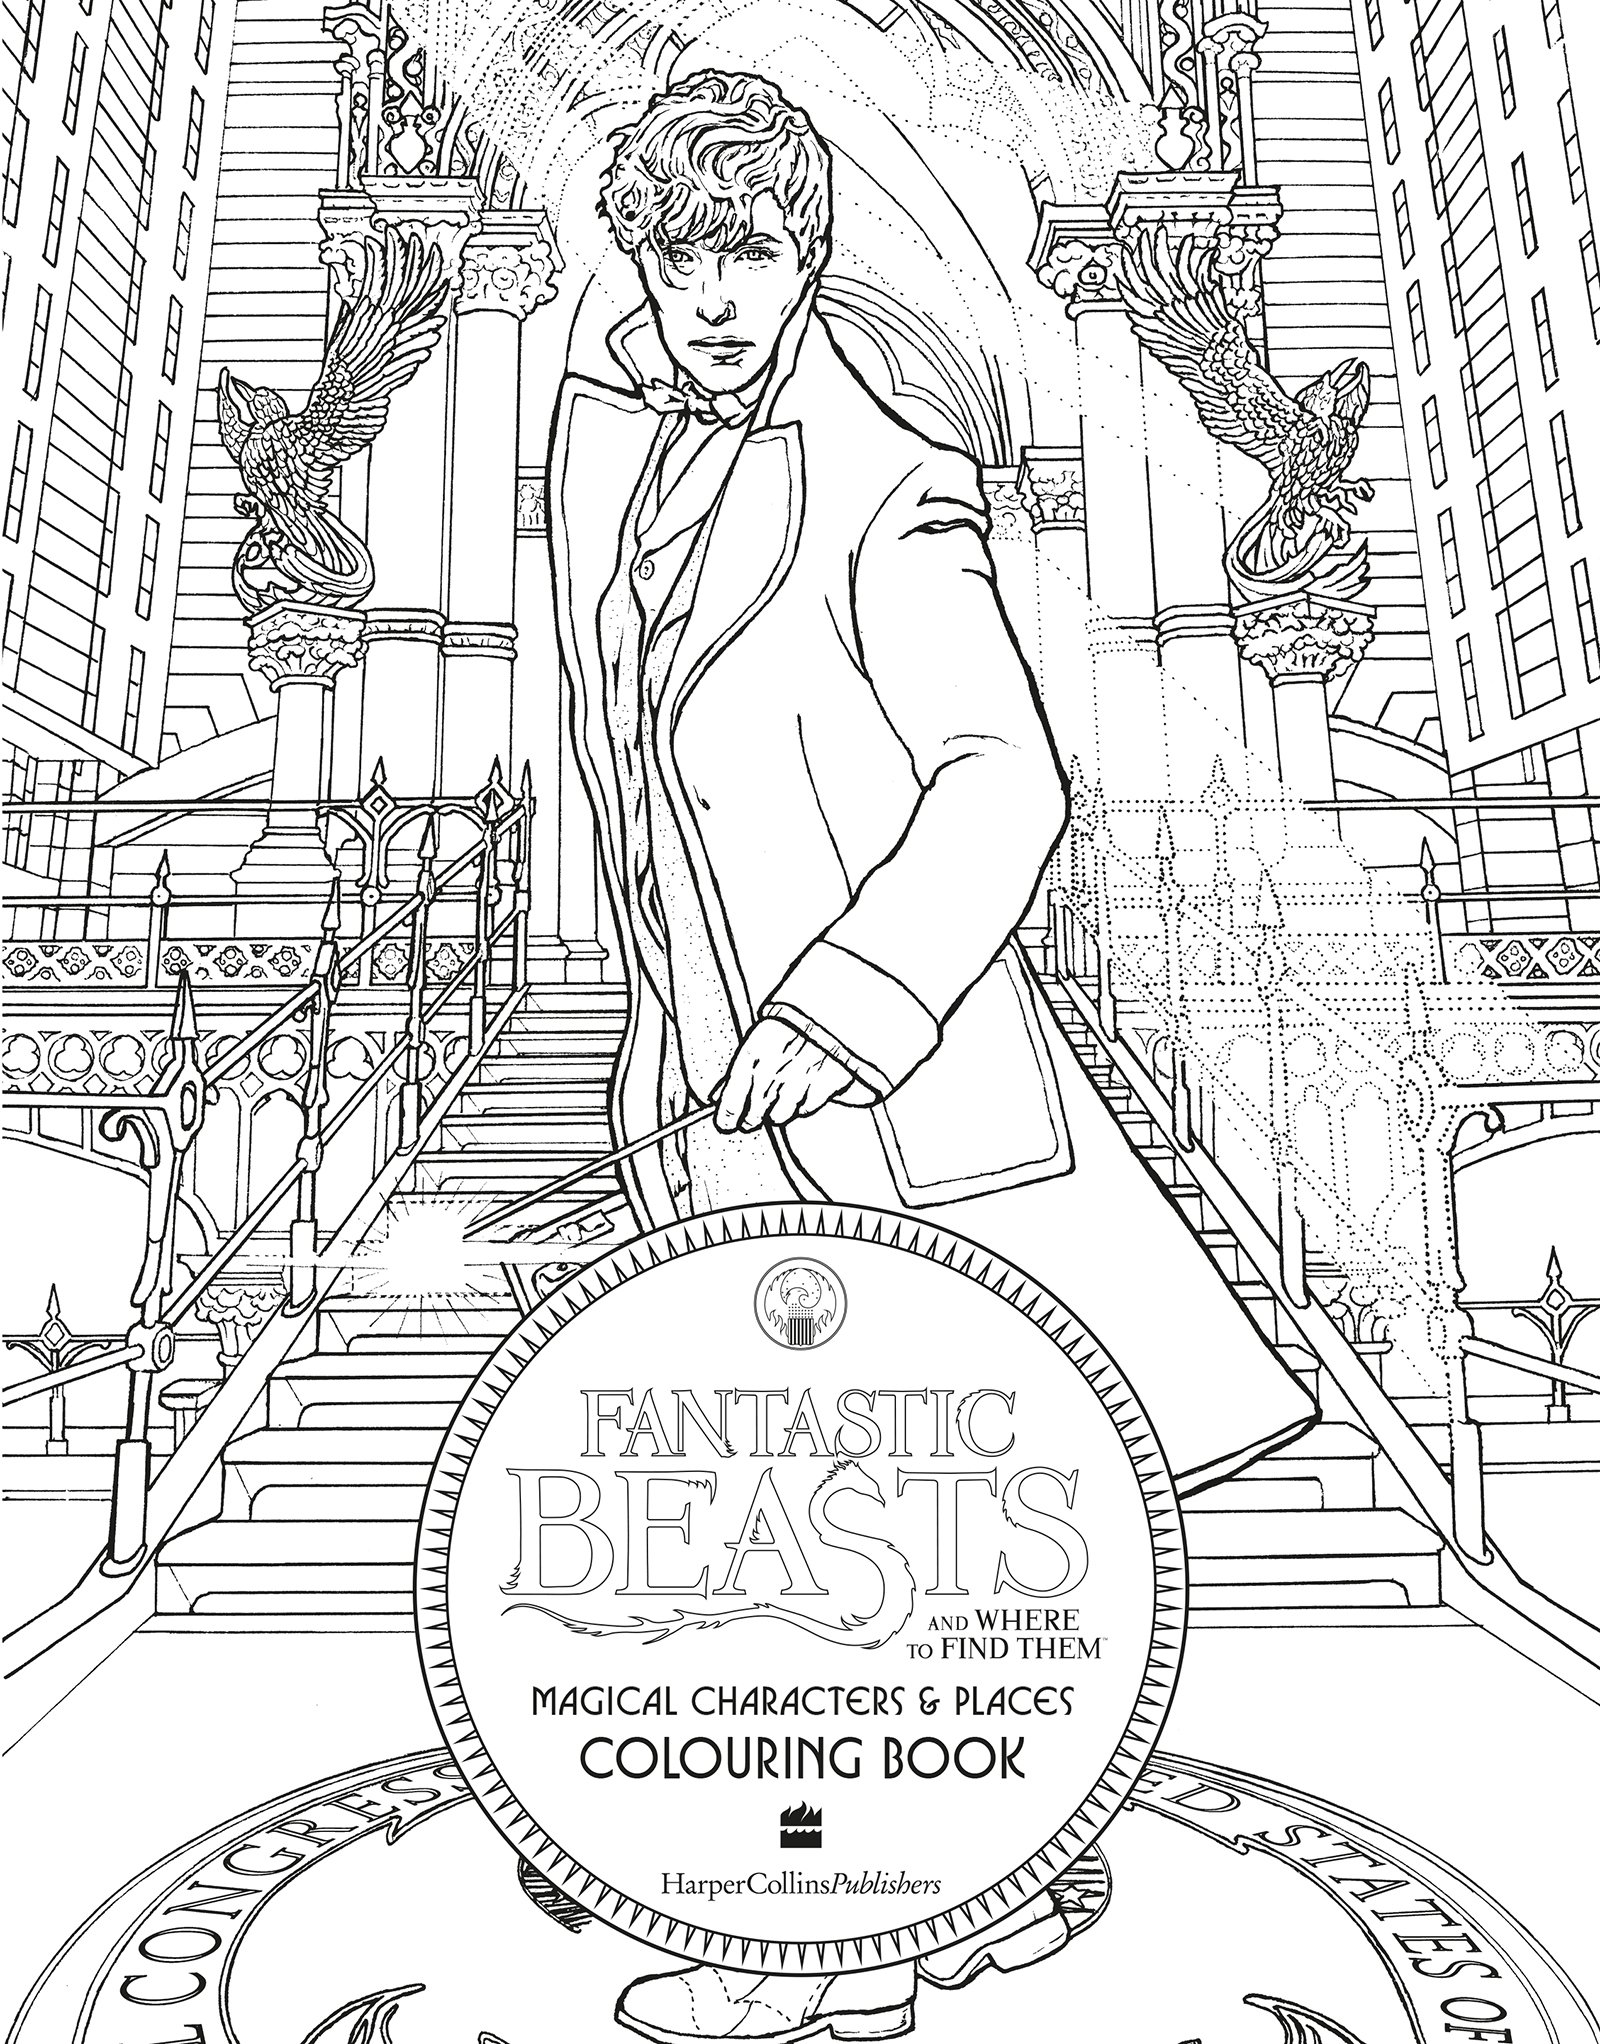 fantastic beasts coloring pages Fantastic Beasts and Where to Find Them: Magical Characters and  fantastic beasts coloring pages